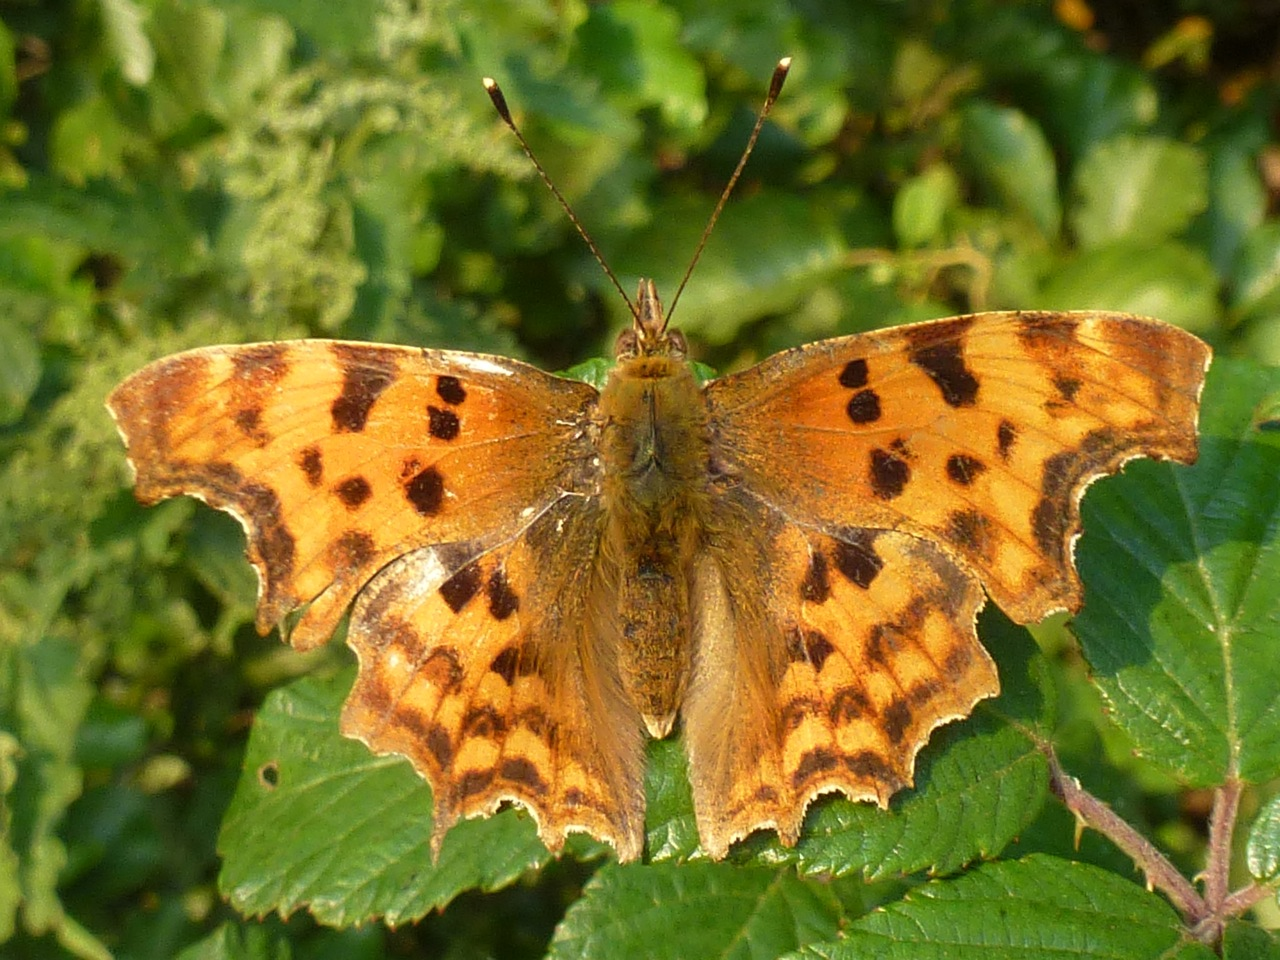 Orange and black patterend butterfly resting on bramble